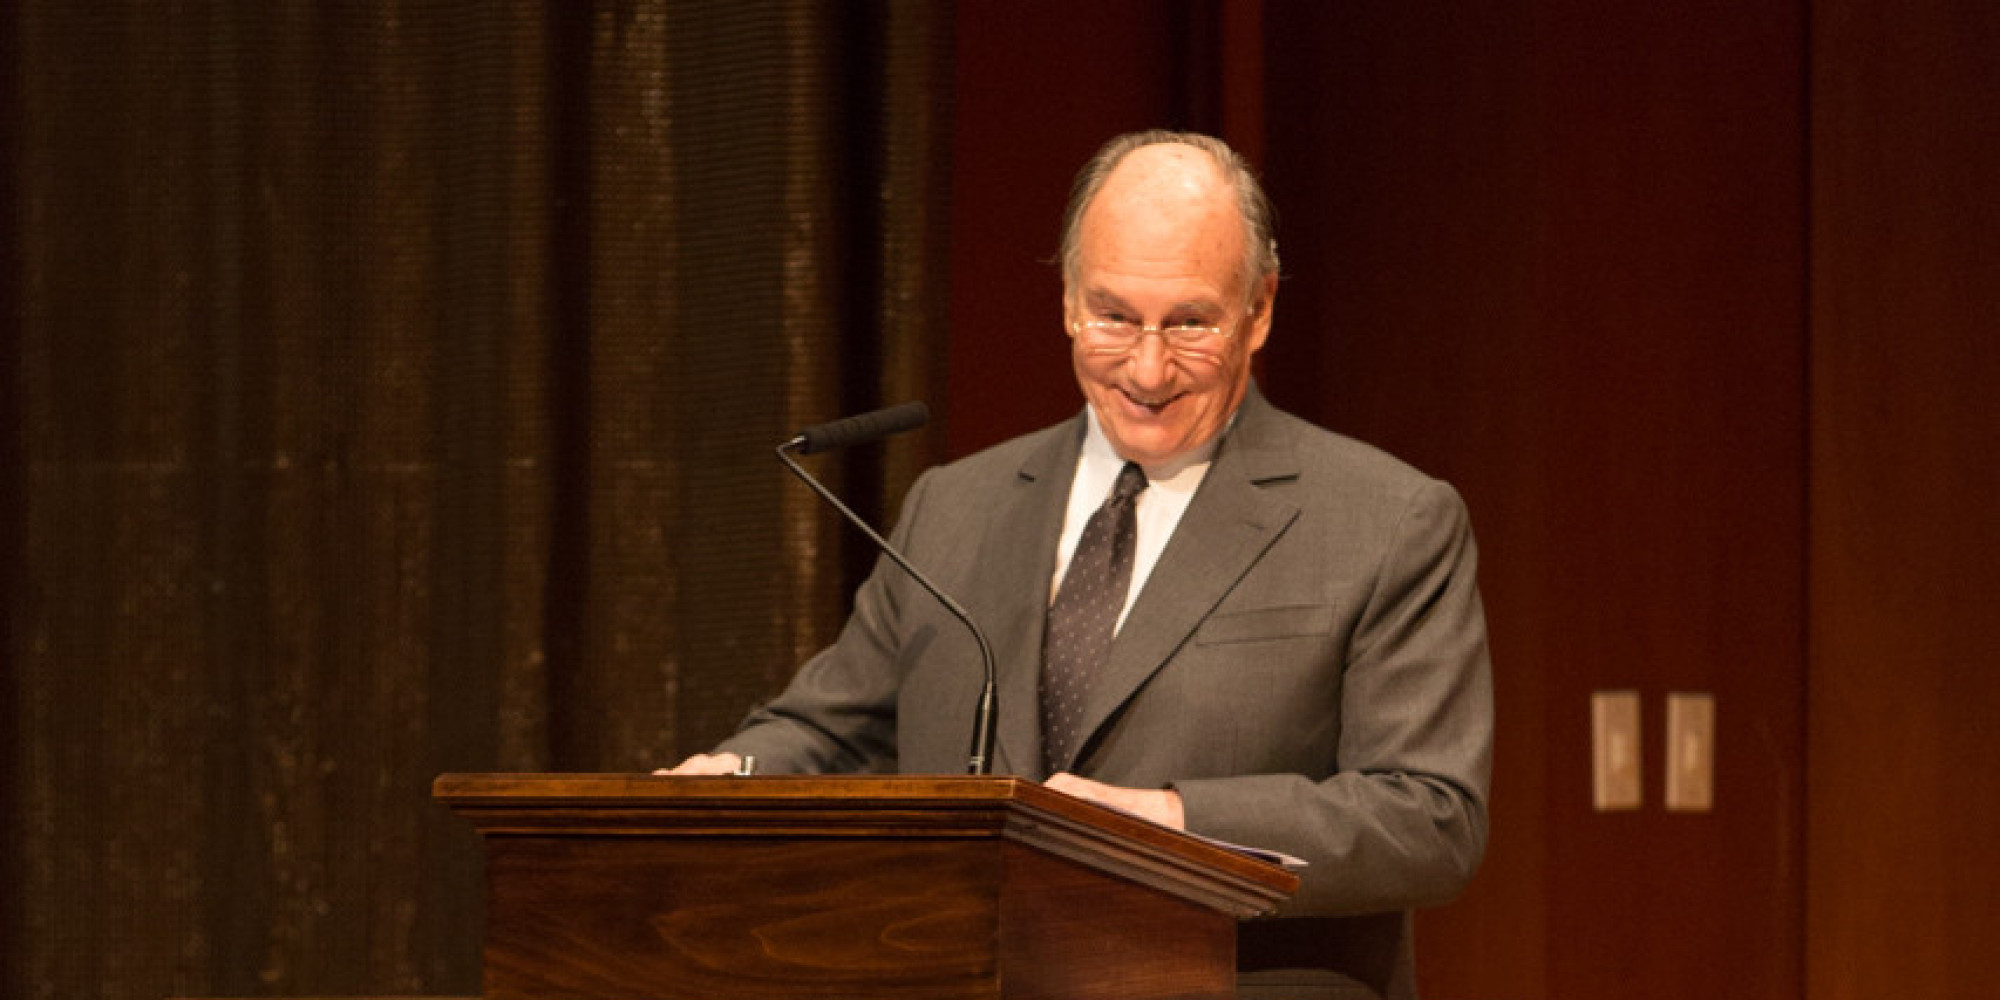 The Aga Khan Helps Brown University Celebrate Its 250th